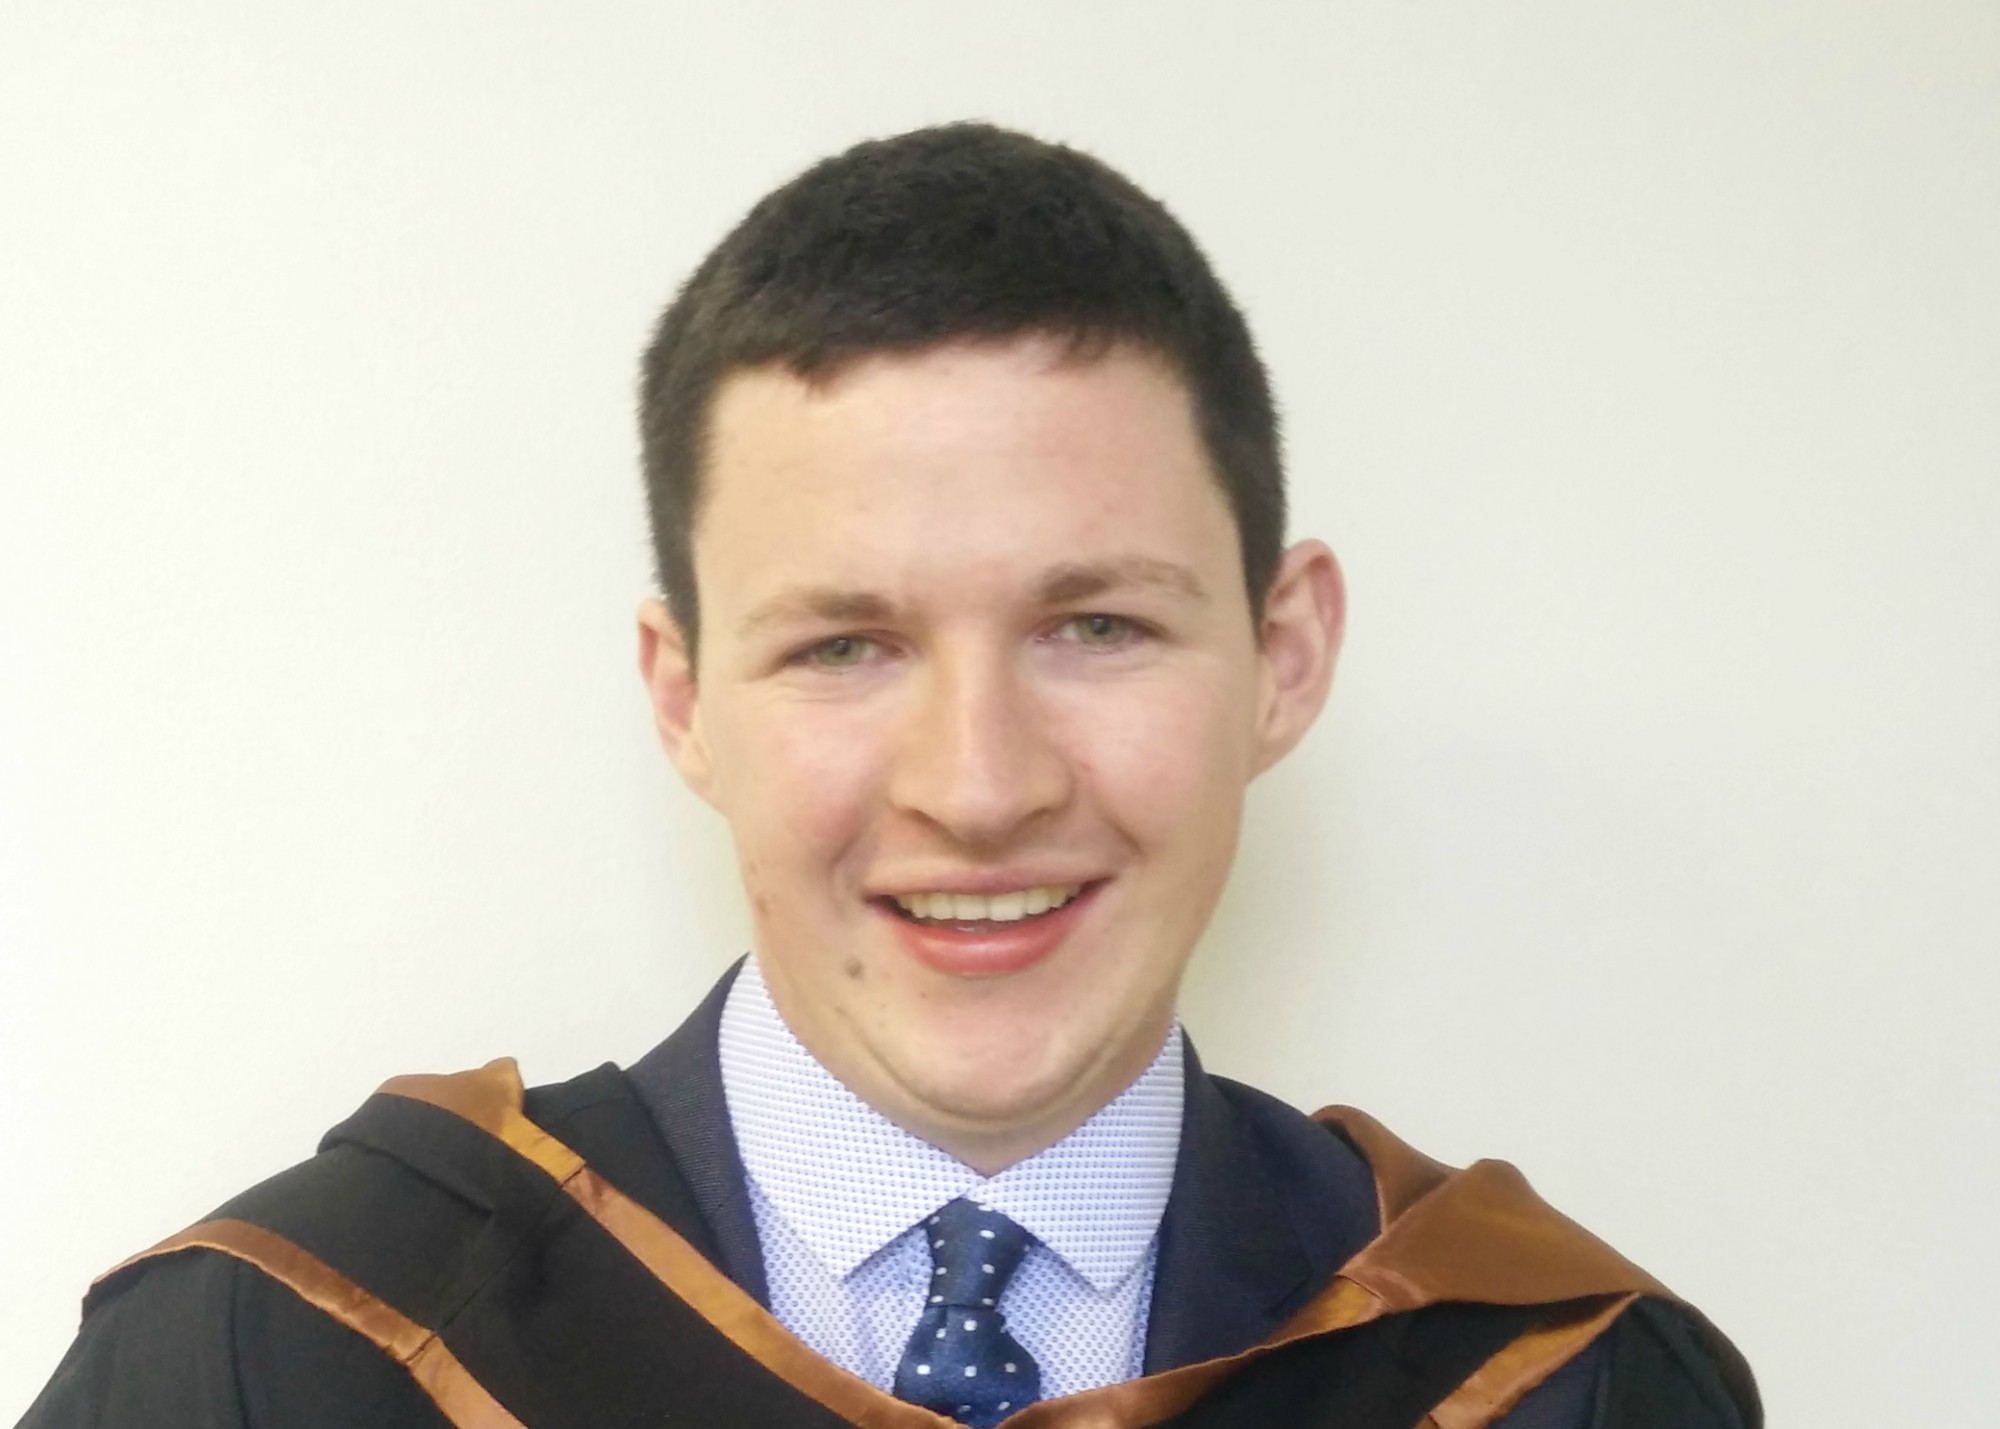 Pictured is William Delaney who secured a position on the Dawn Meats Graduate Programme upon graduation